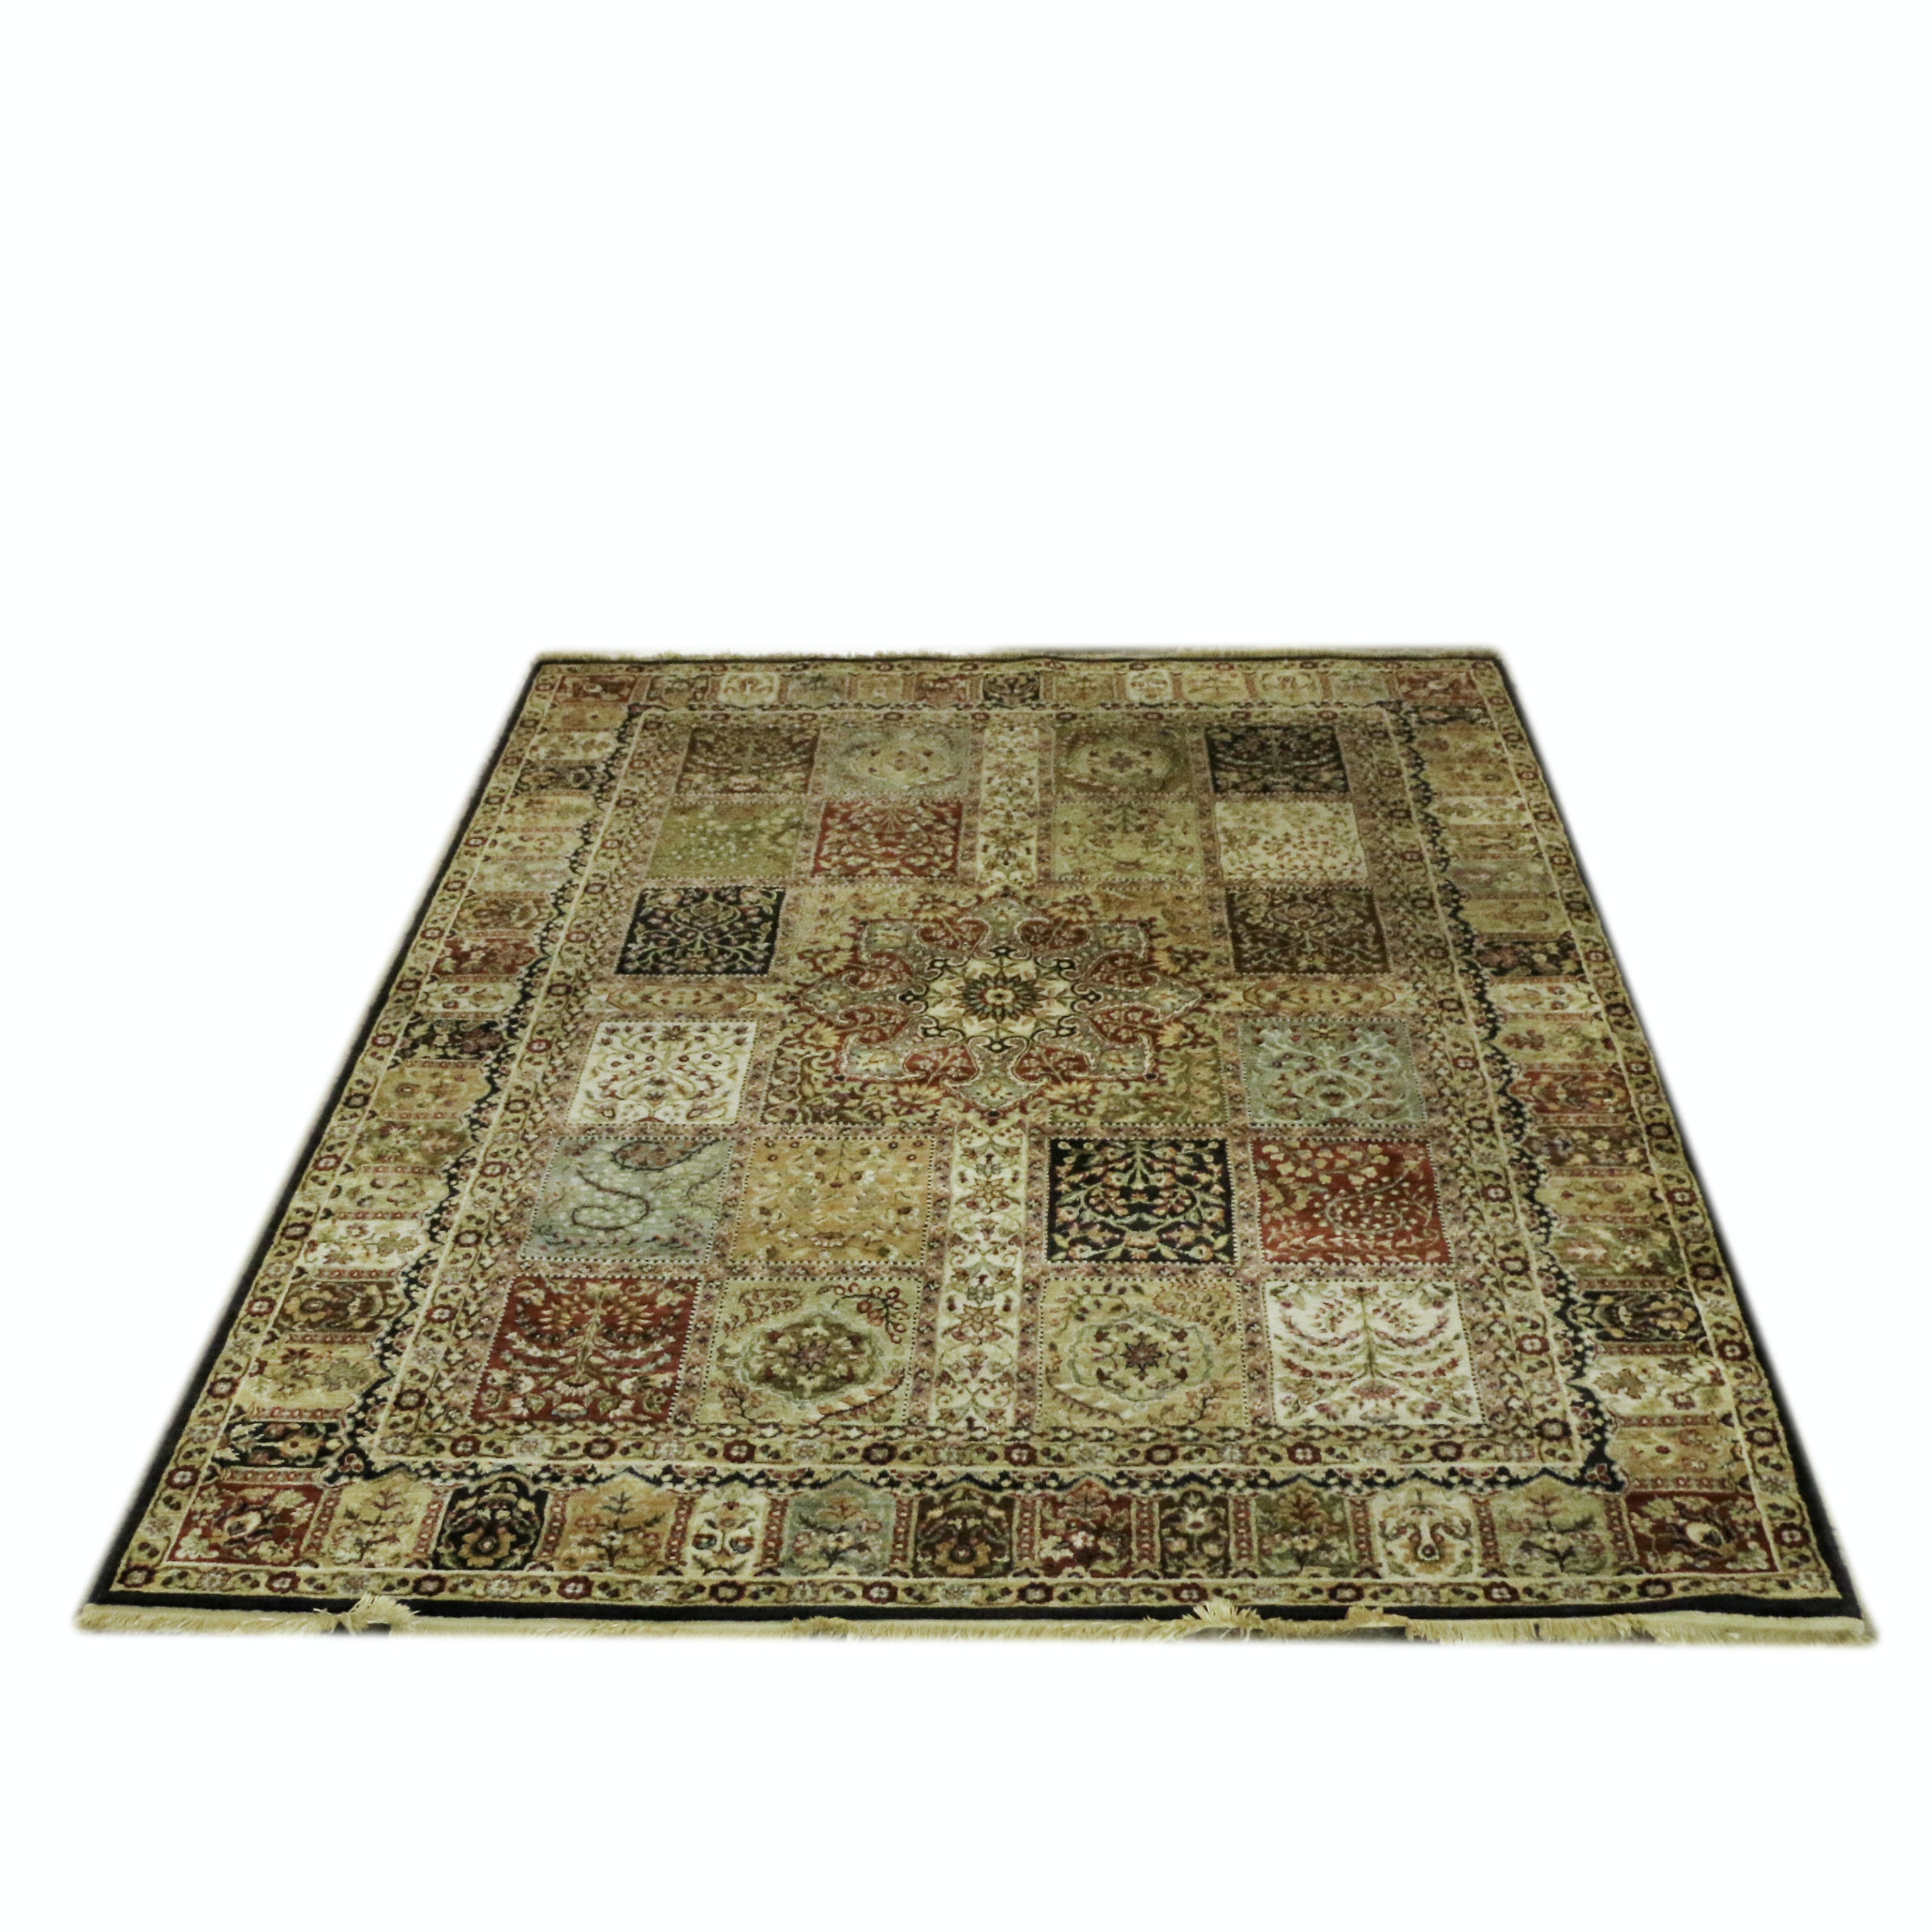 Power-Loomed Kathy Ireland for Shaw Persian Style Rug